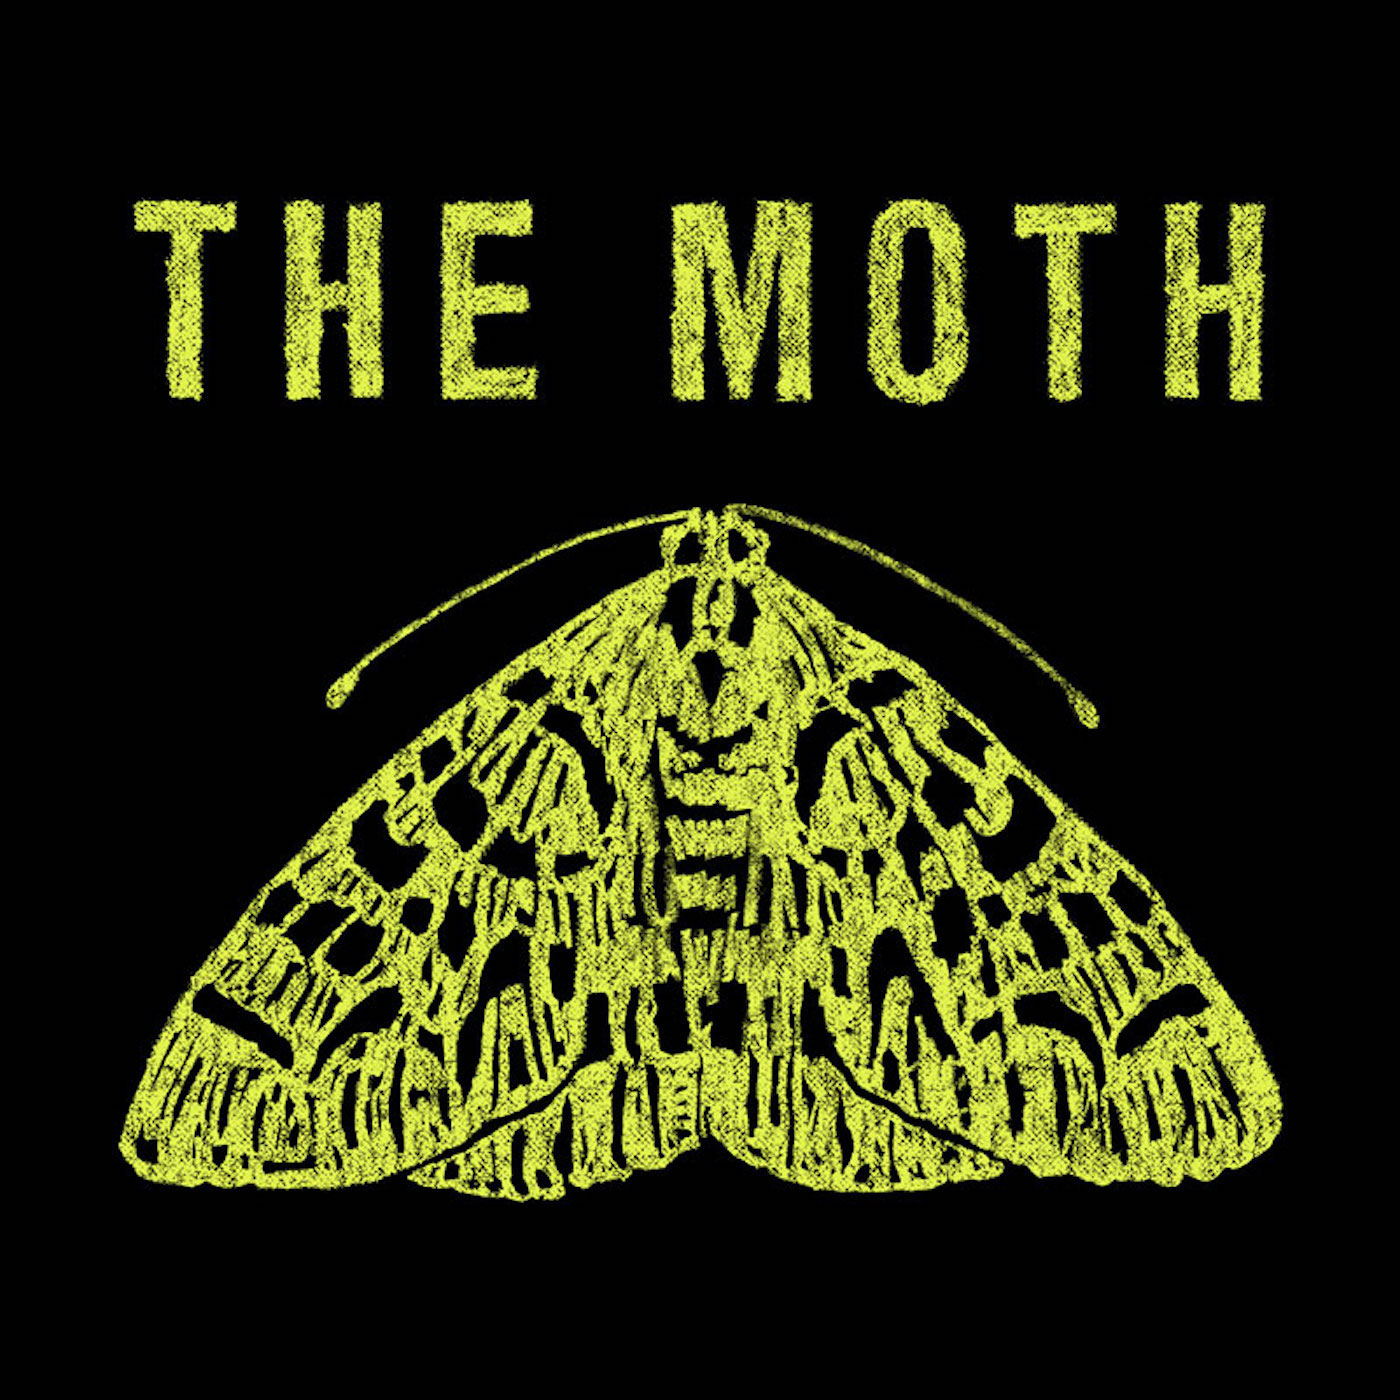 The Moth Radio Hour: Gang Initiations, My Way and the KKK